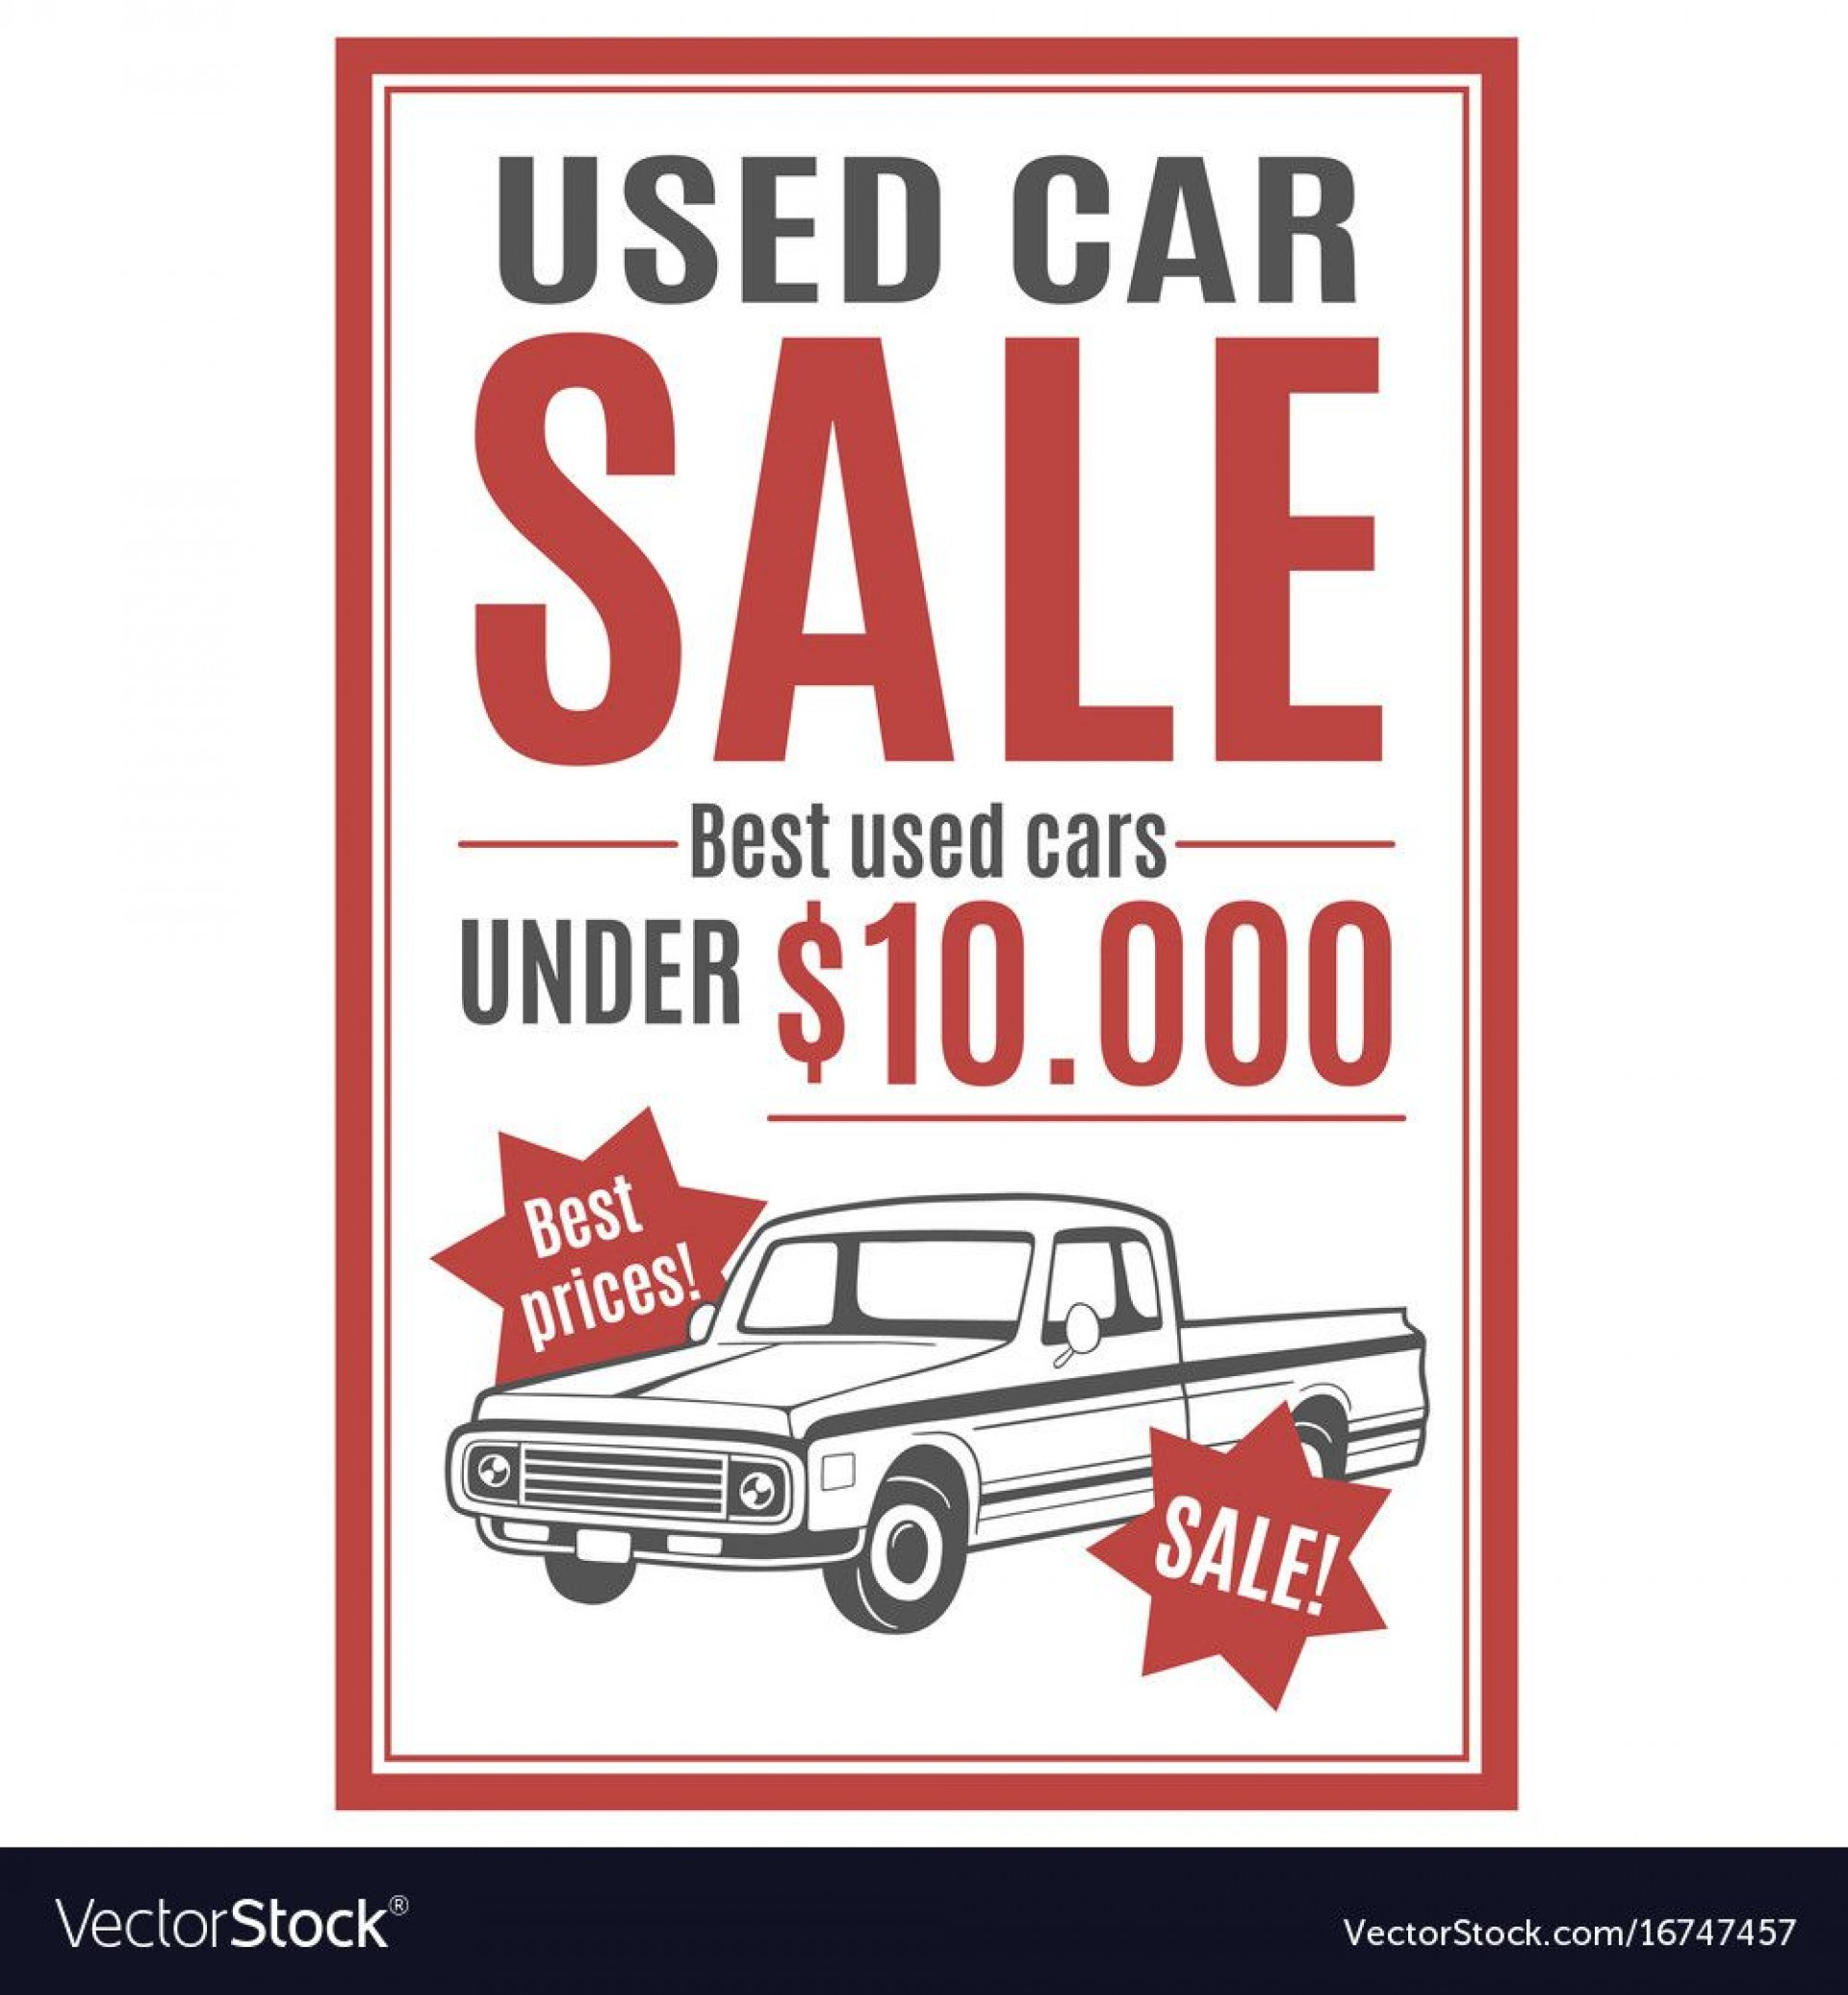 008 Rare Car For Sale Template Photo  Sign Word Bill Of Uk1920